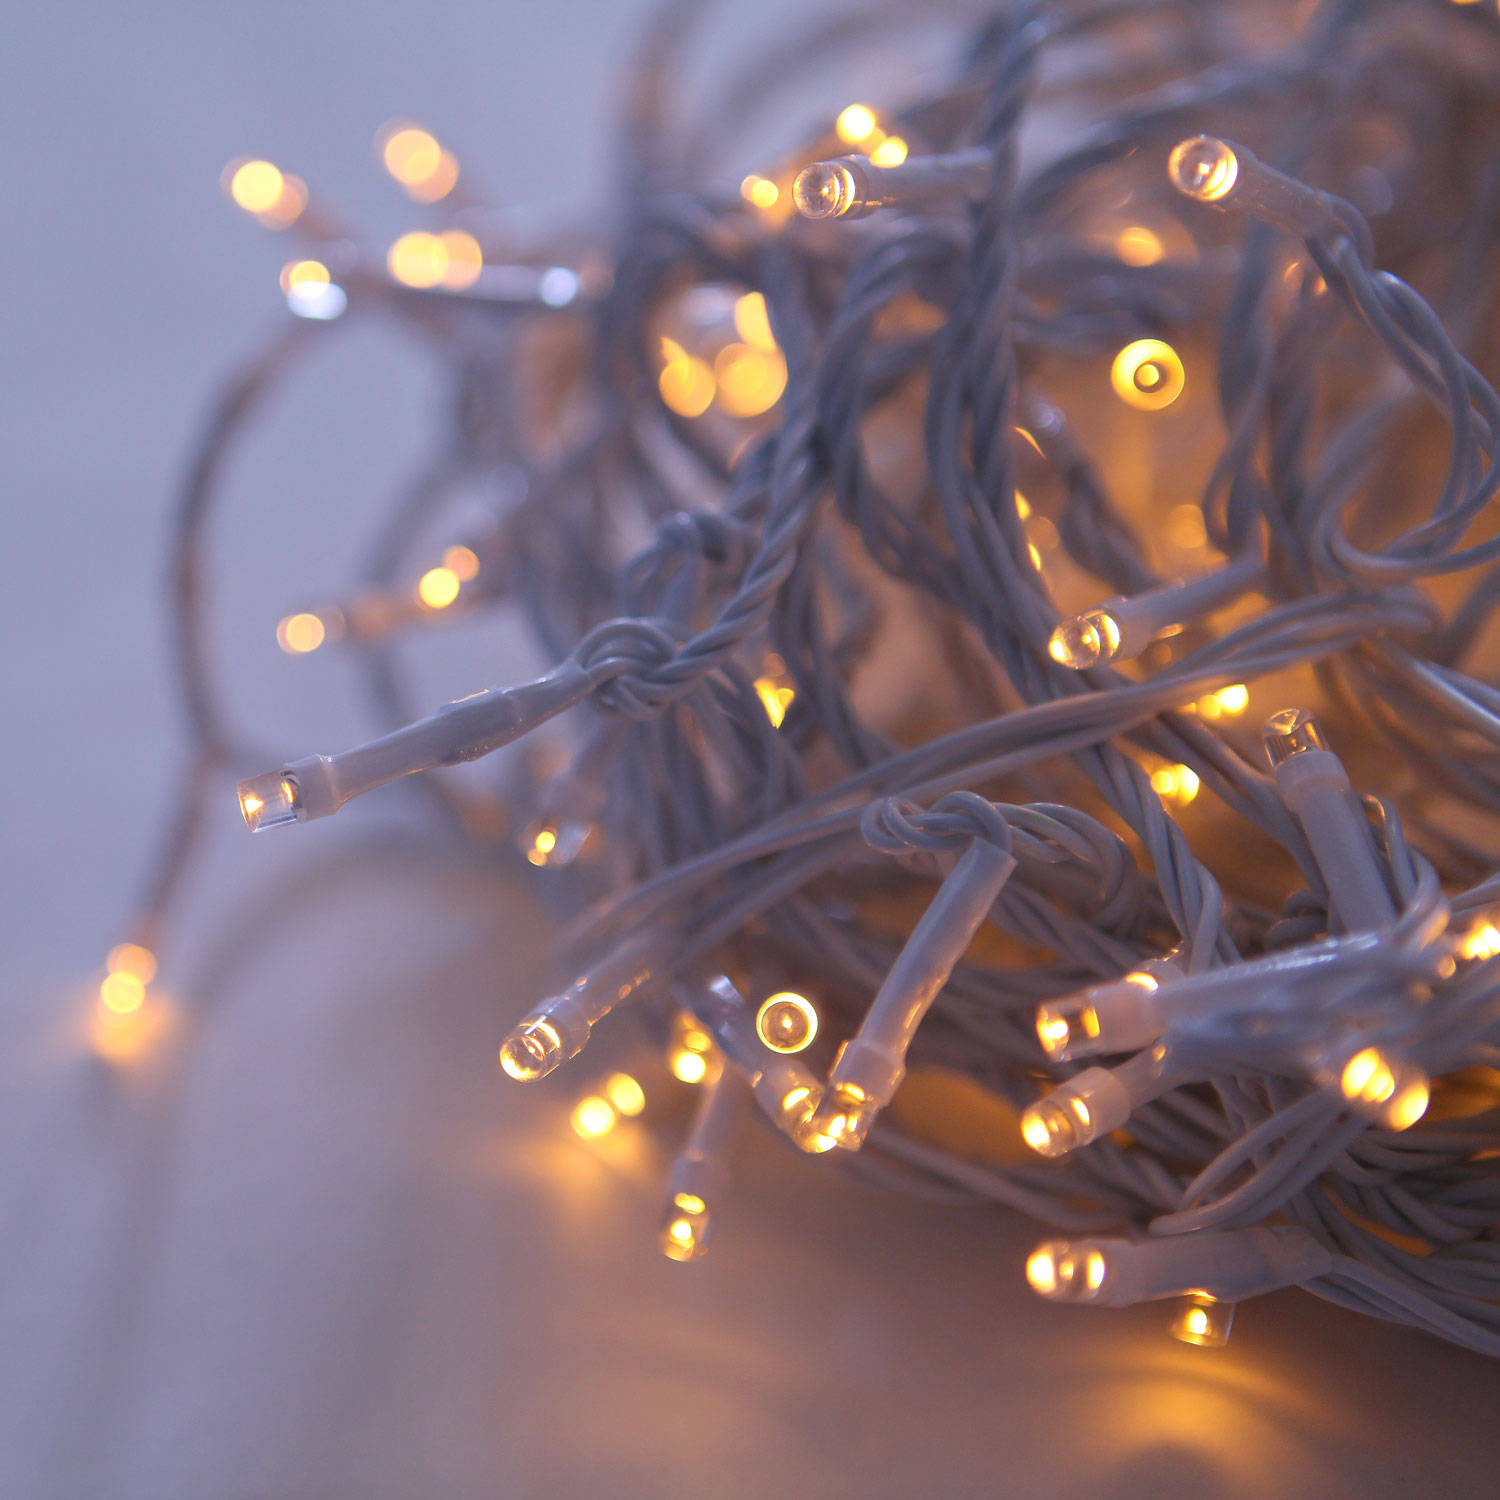 String Of Christmas Lights Image : Lights.com String Lights Christmas Lights Warm White 200 LED Connectable White Cable ...